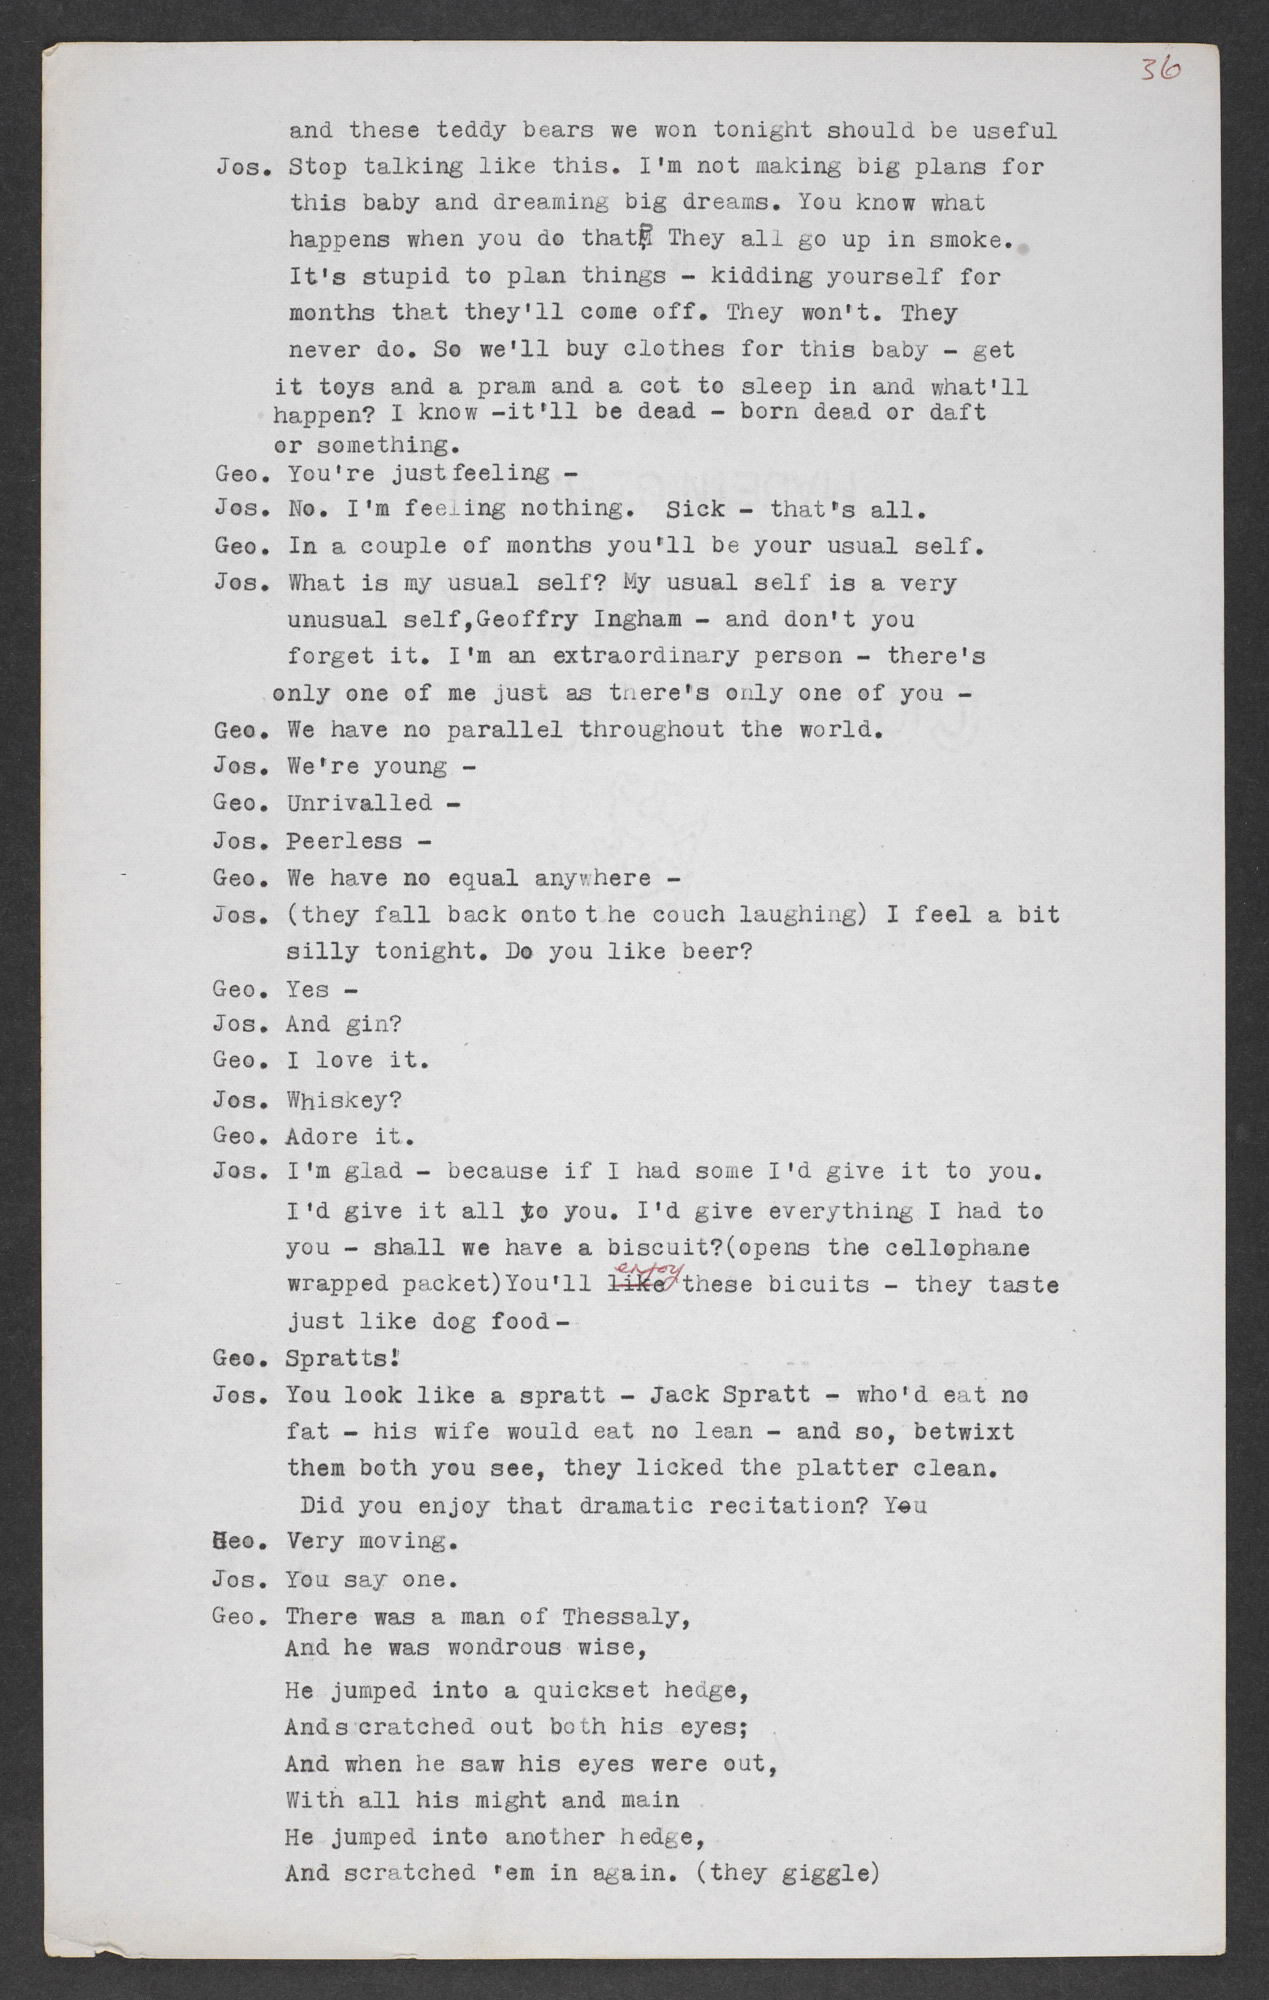 Page 36 from a typescript draft of A Taste of Honey by Shelagh Delaney, showing dialogue between Jo and Geof in Act 1 Scene 2